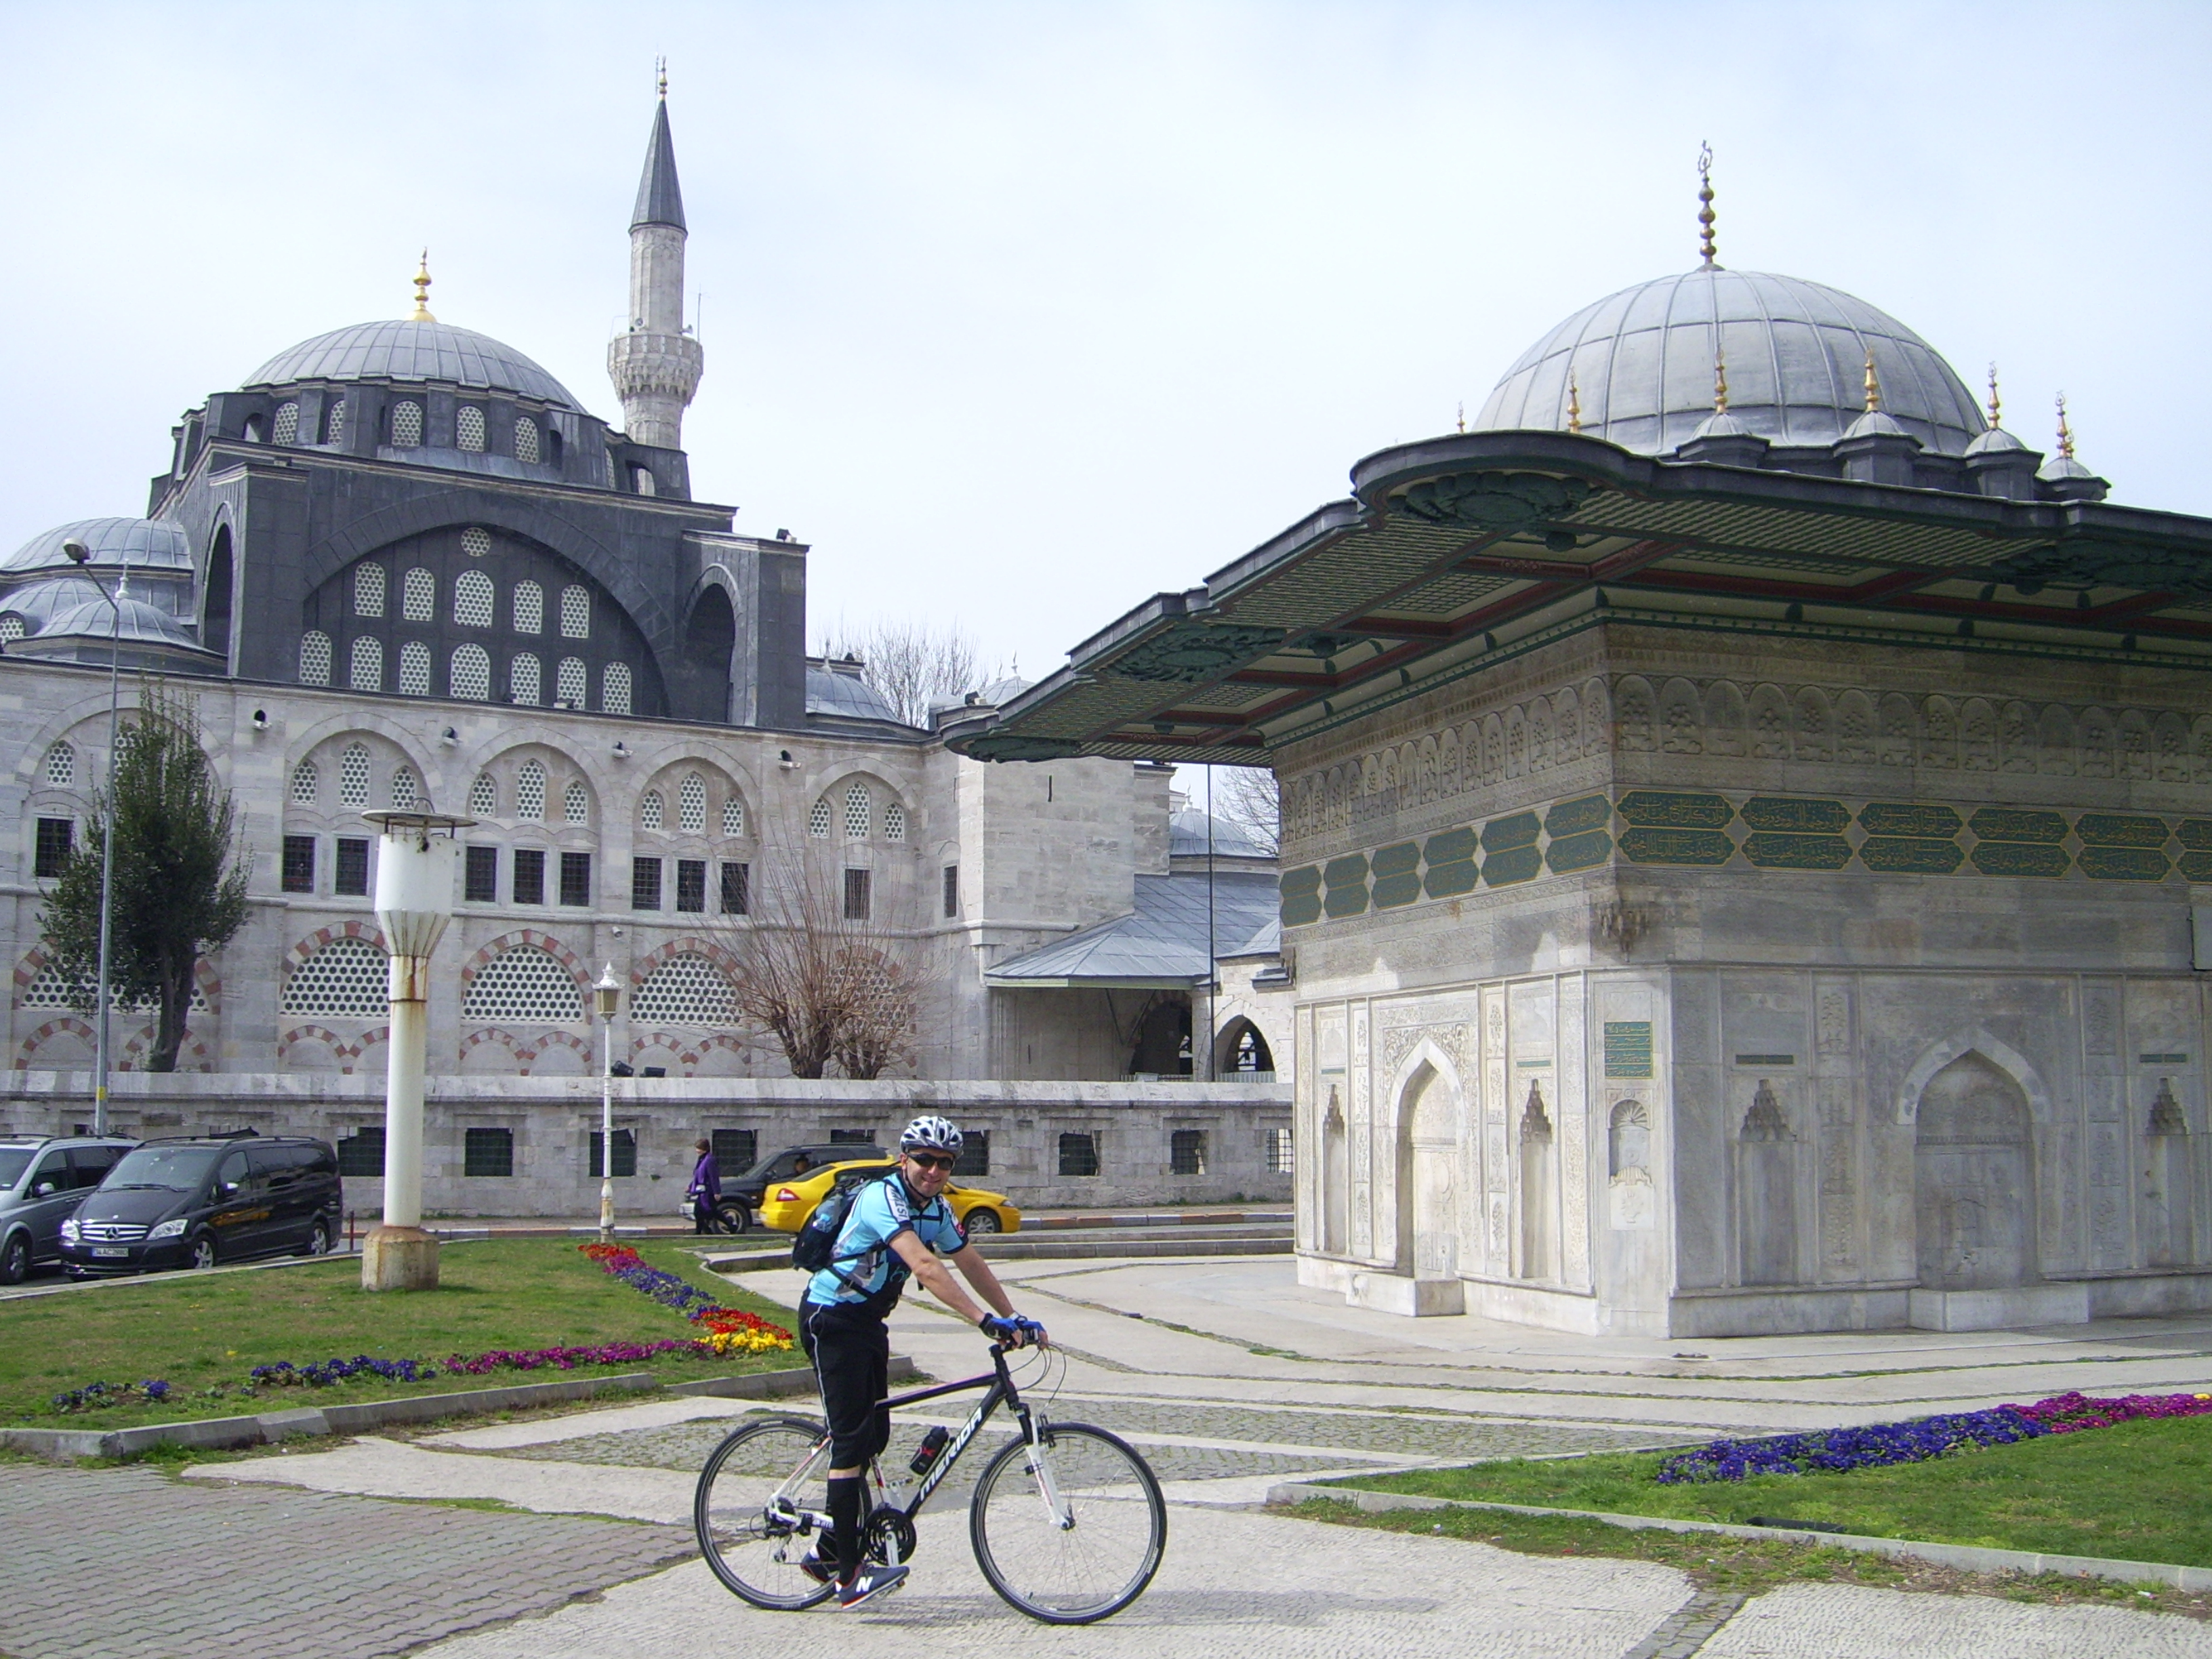 Kilic Ali Pasa Mosque and Fountain